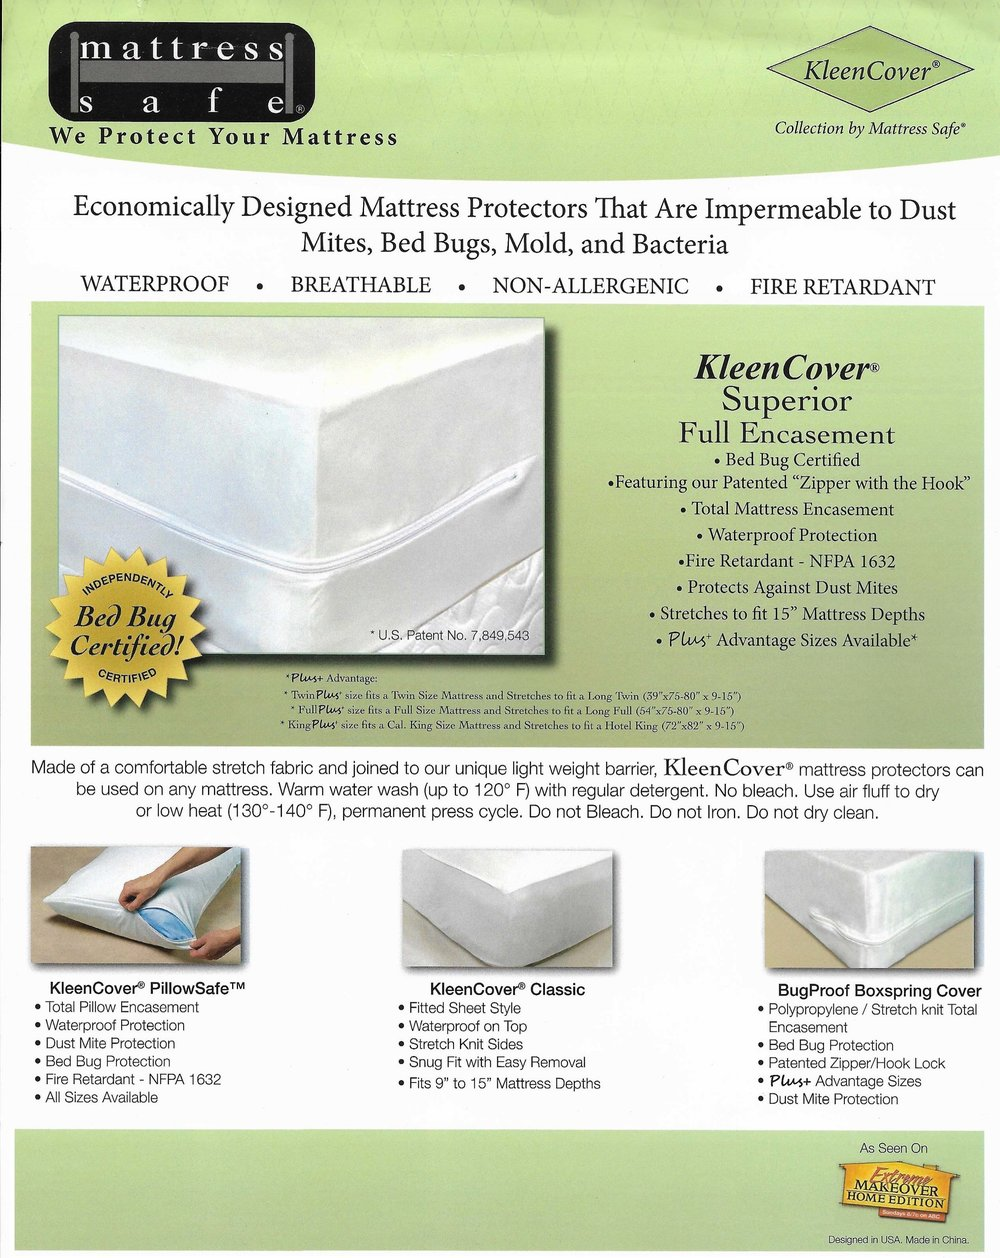 Mattress Safe® Encasements